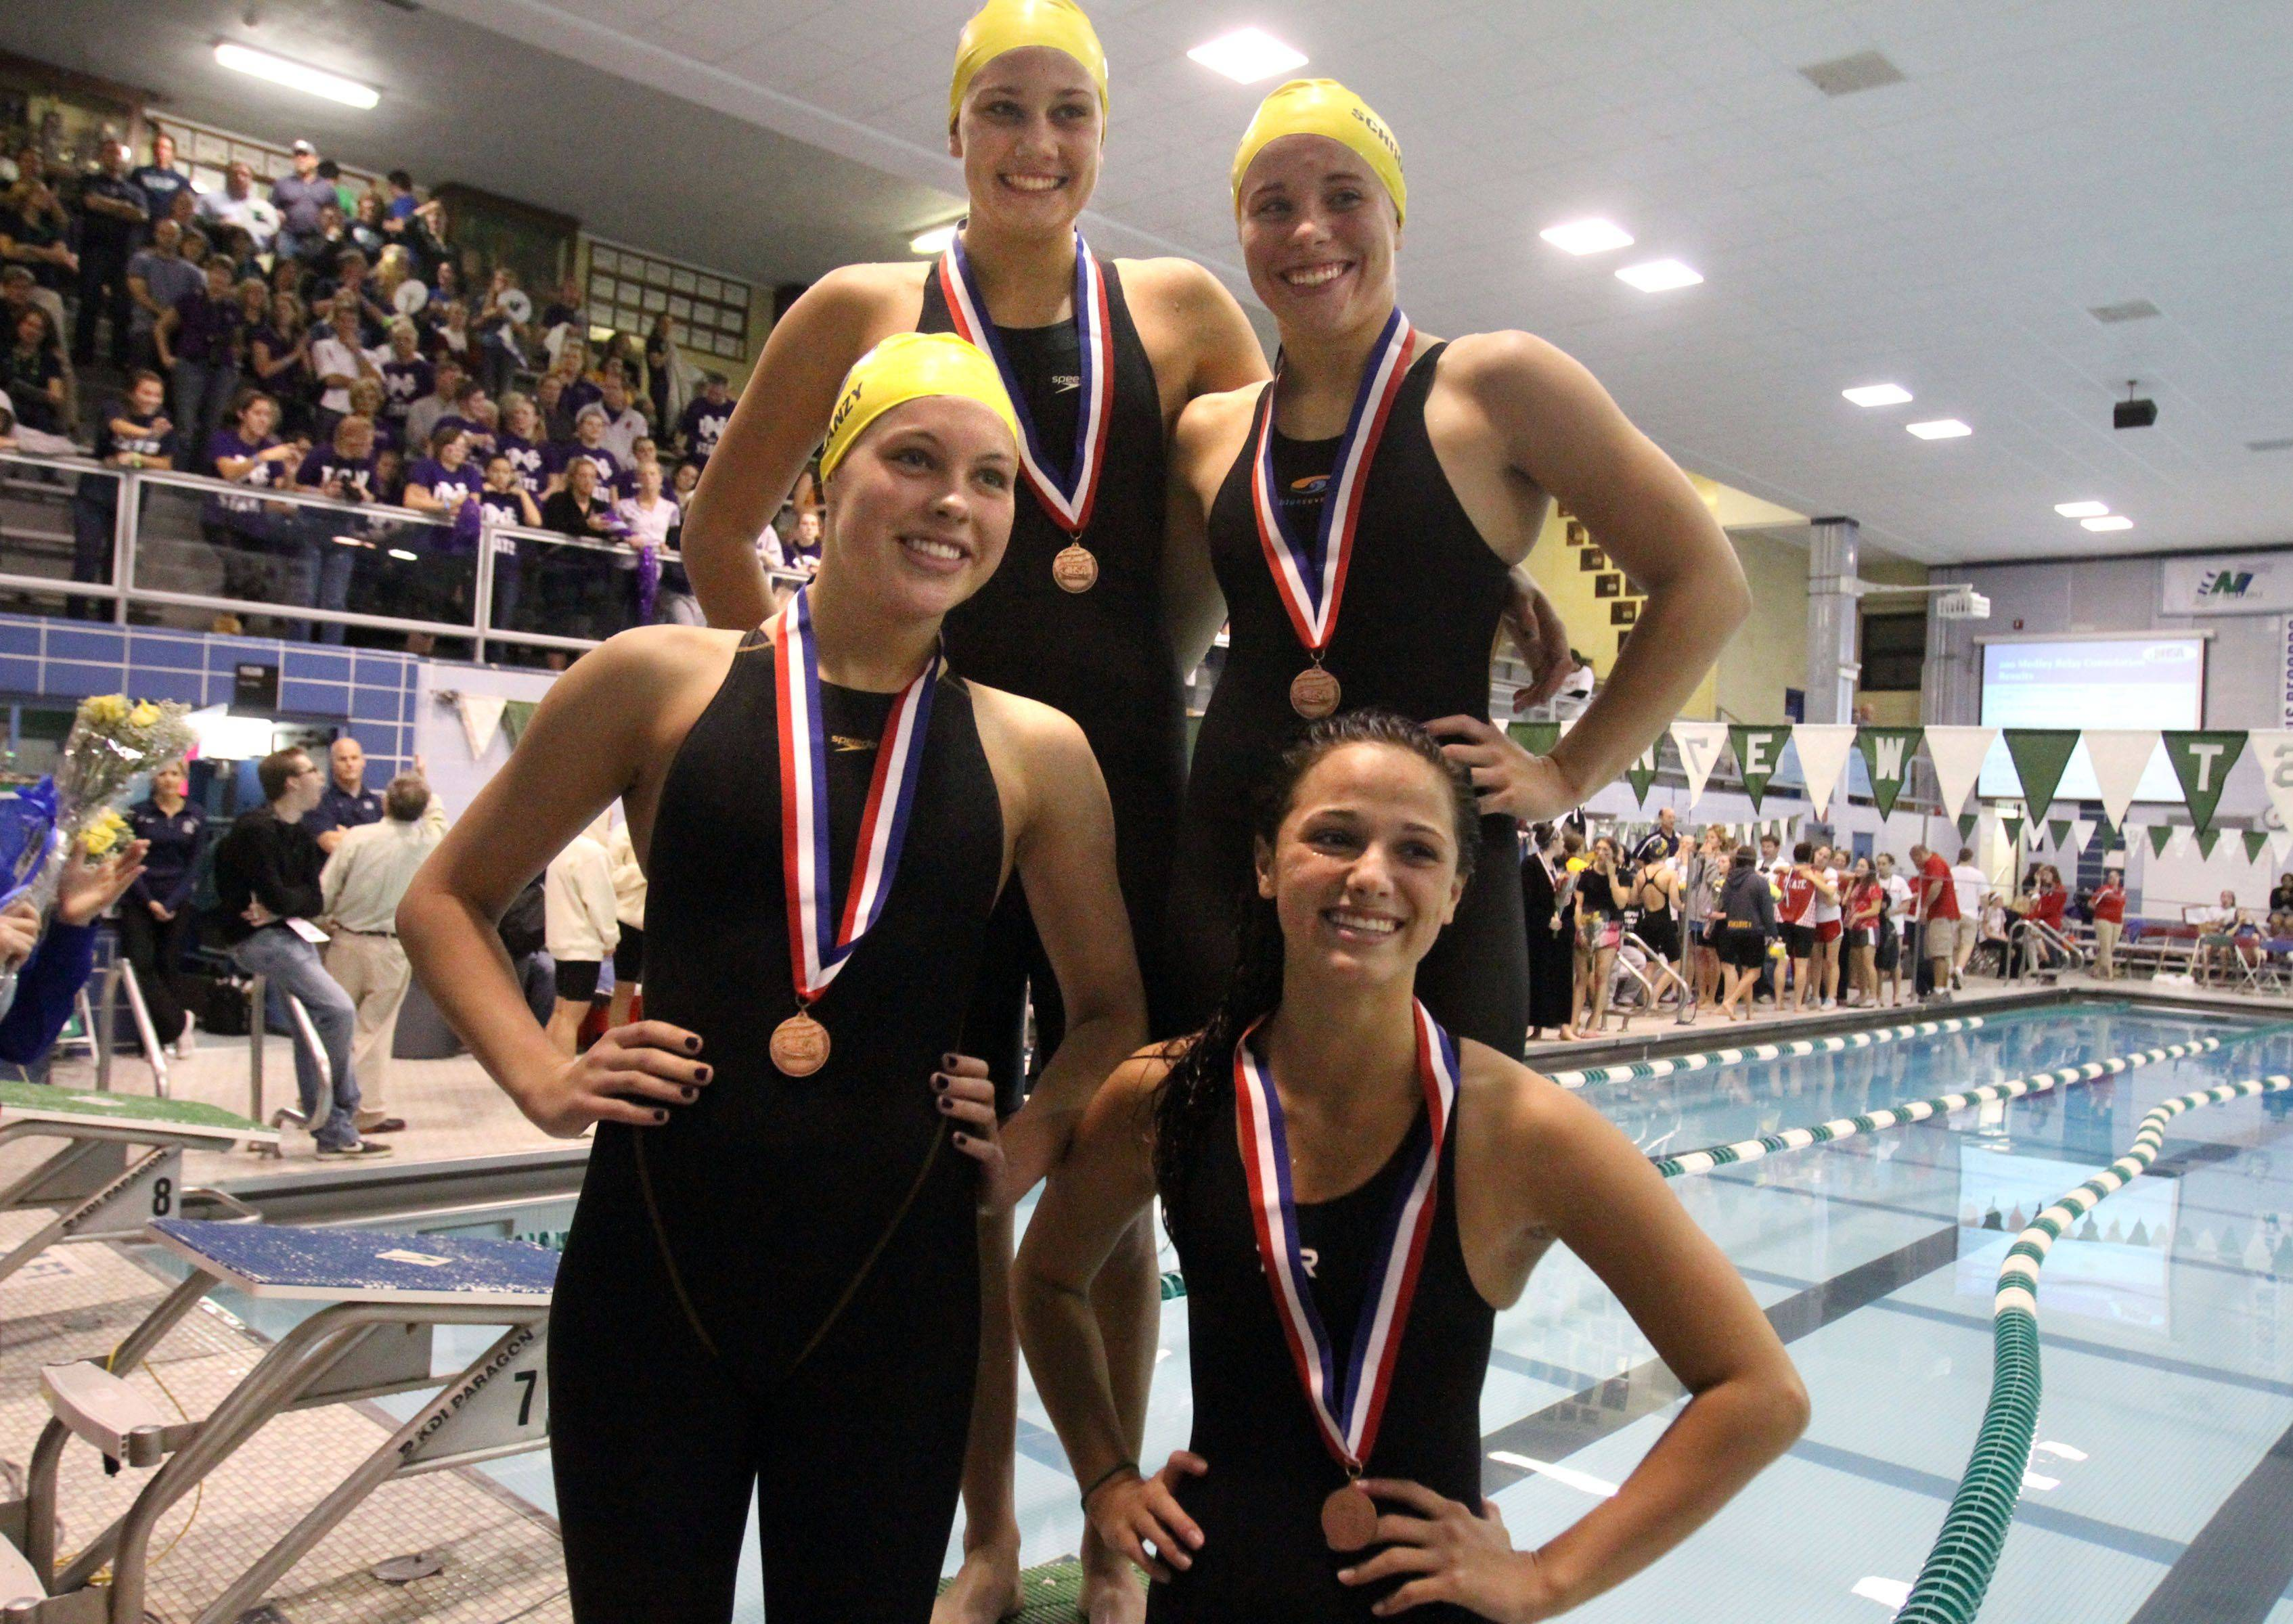 Neuqua Valley's Riley Schroedter, Tara Blanzy, Megan Childs, and Gia Dalesandro placed sixth in the 400-yard freestyle relay at IHSA state championships in Winnetka on Saturday, November 19th.